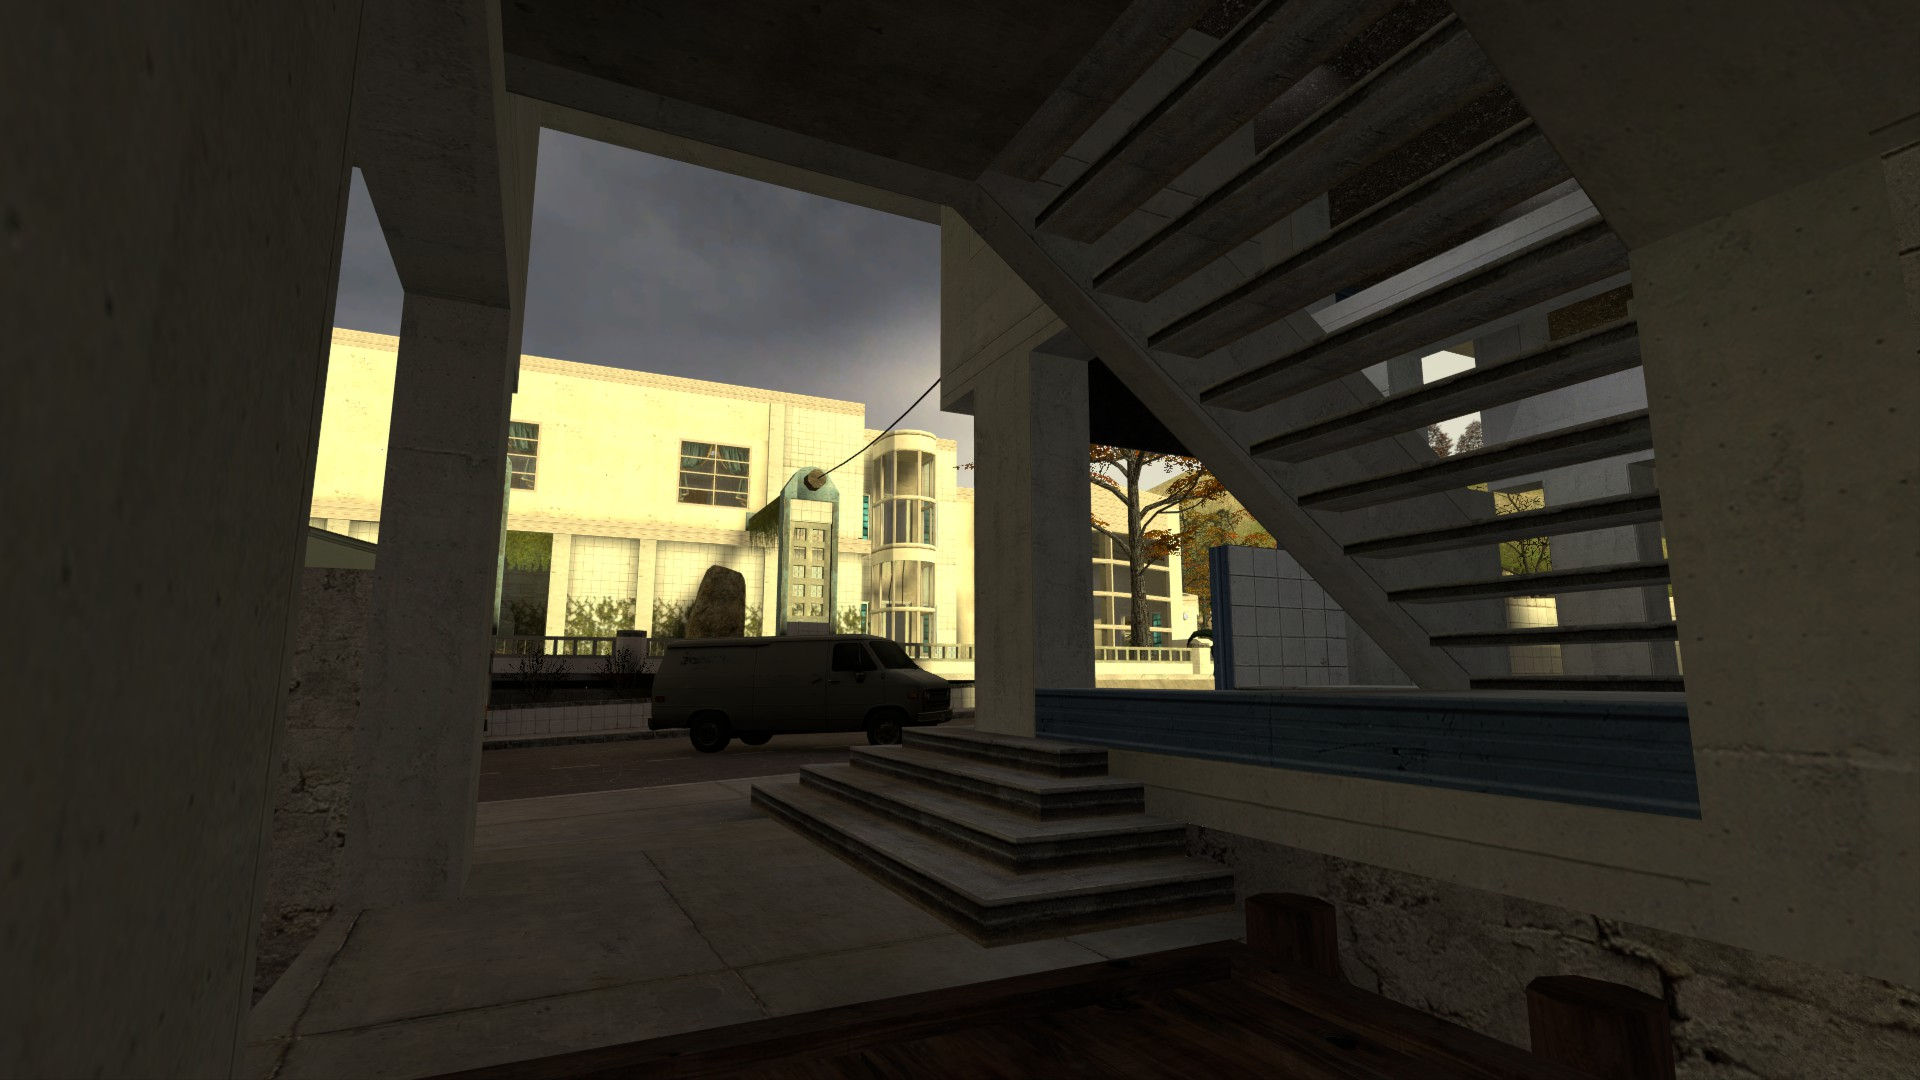 cs_harborbank0008